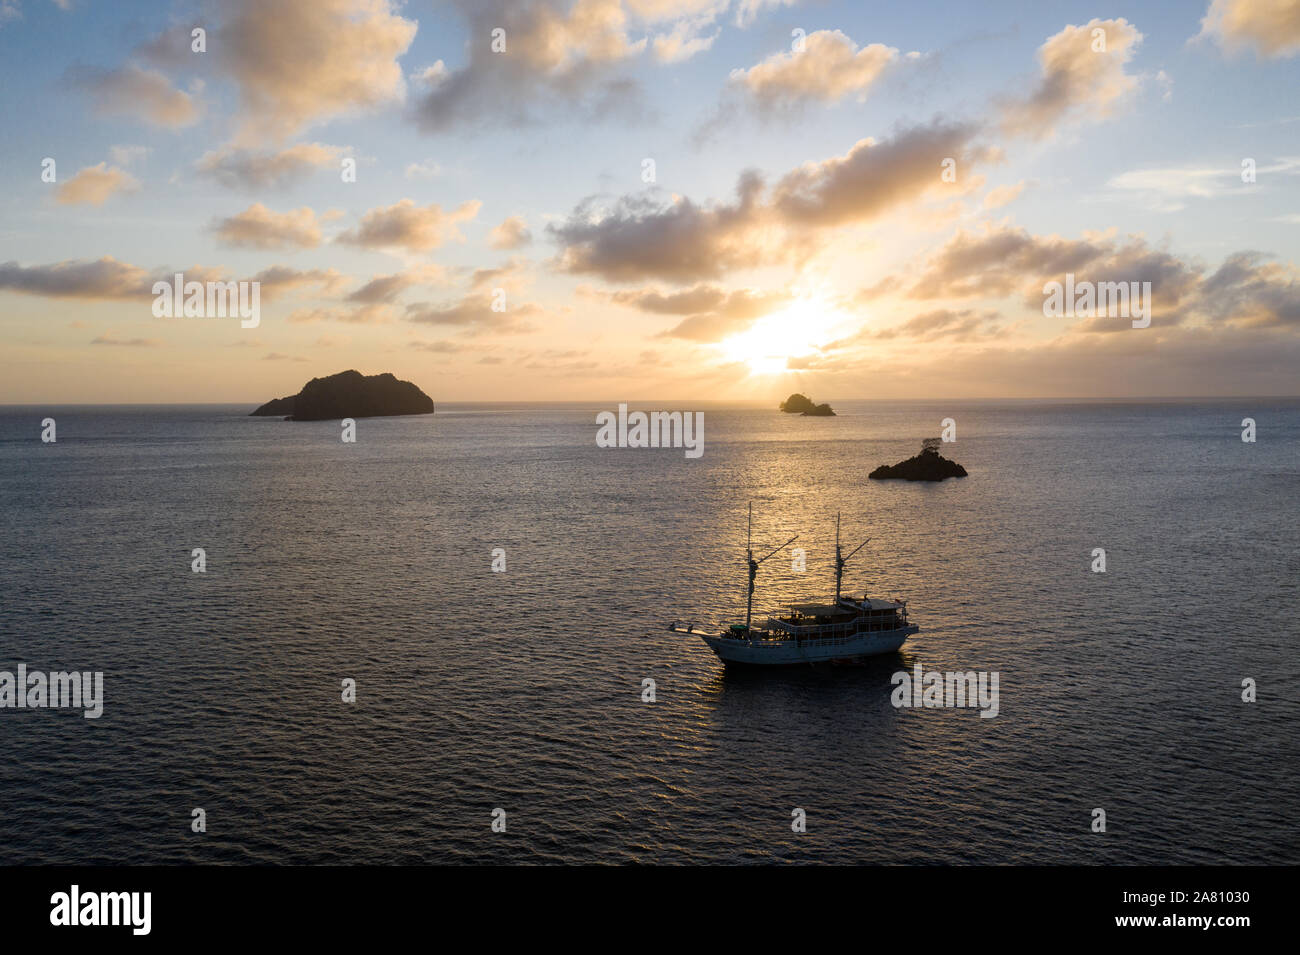 A peaceful sunset silhouettes limestone islands and a Pinisi schooner in Raja Ampat, Indonesia. This area harbors extraordinary marine biodiversity. Stock Photo